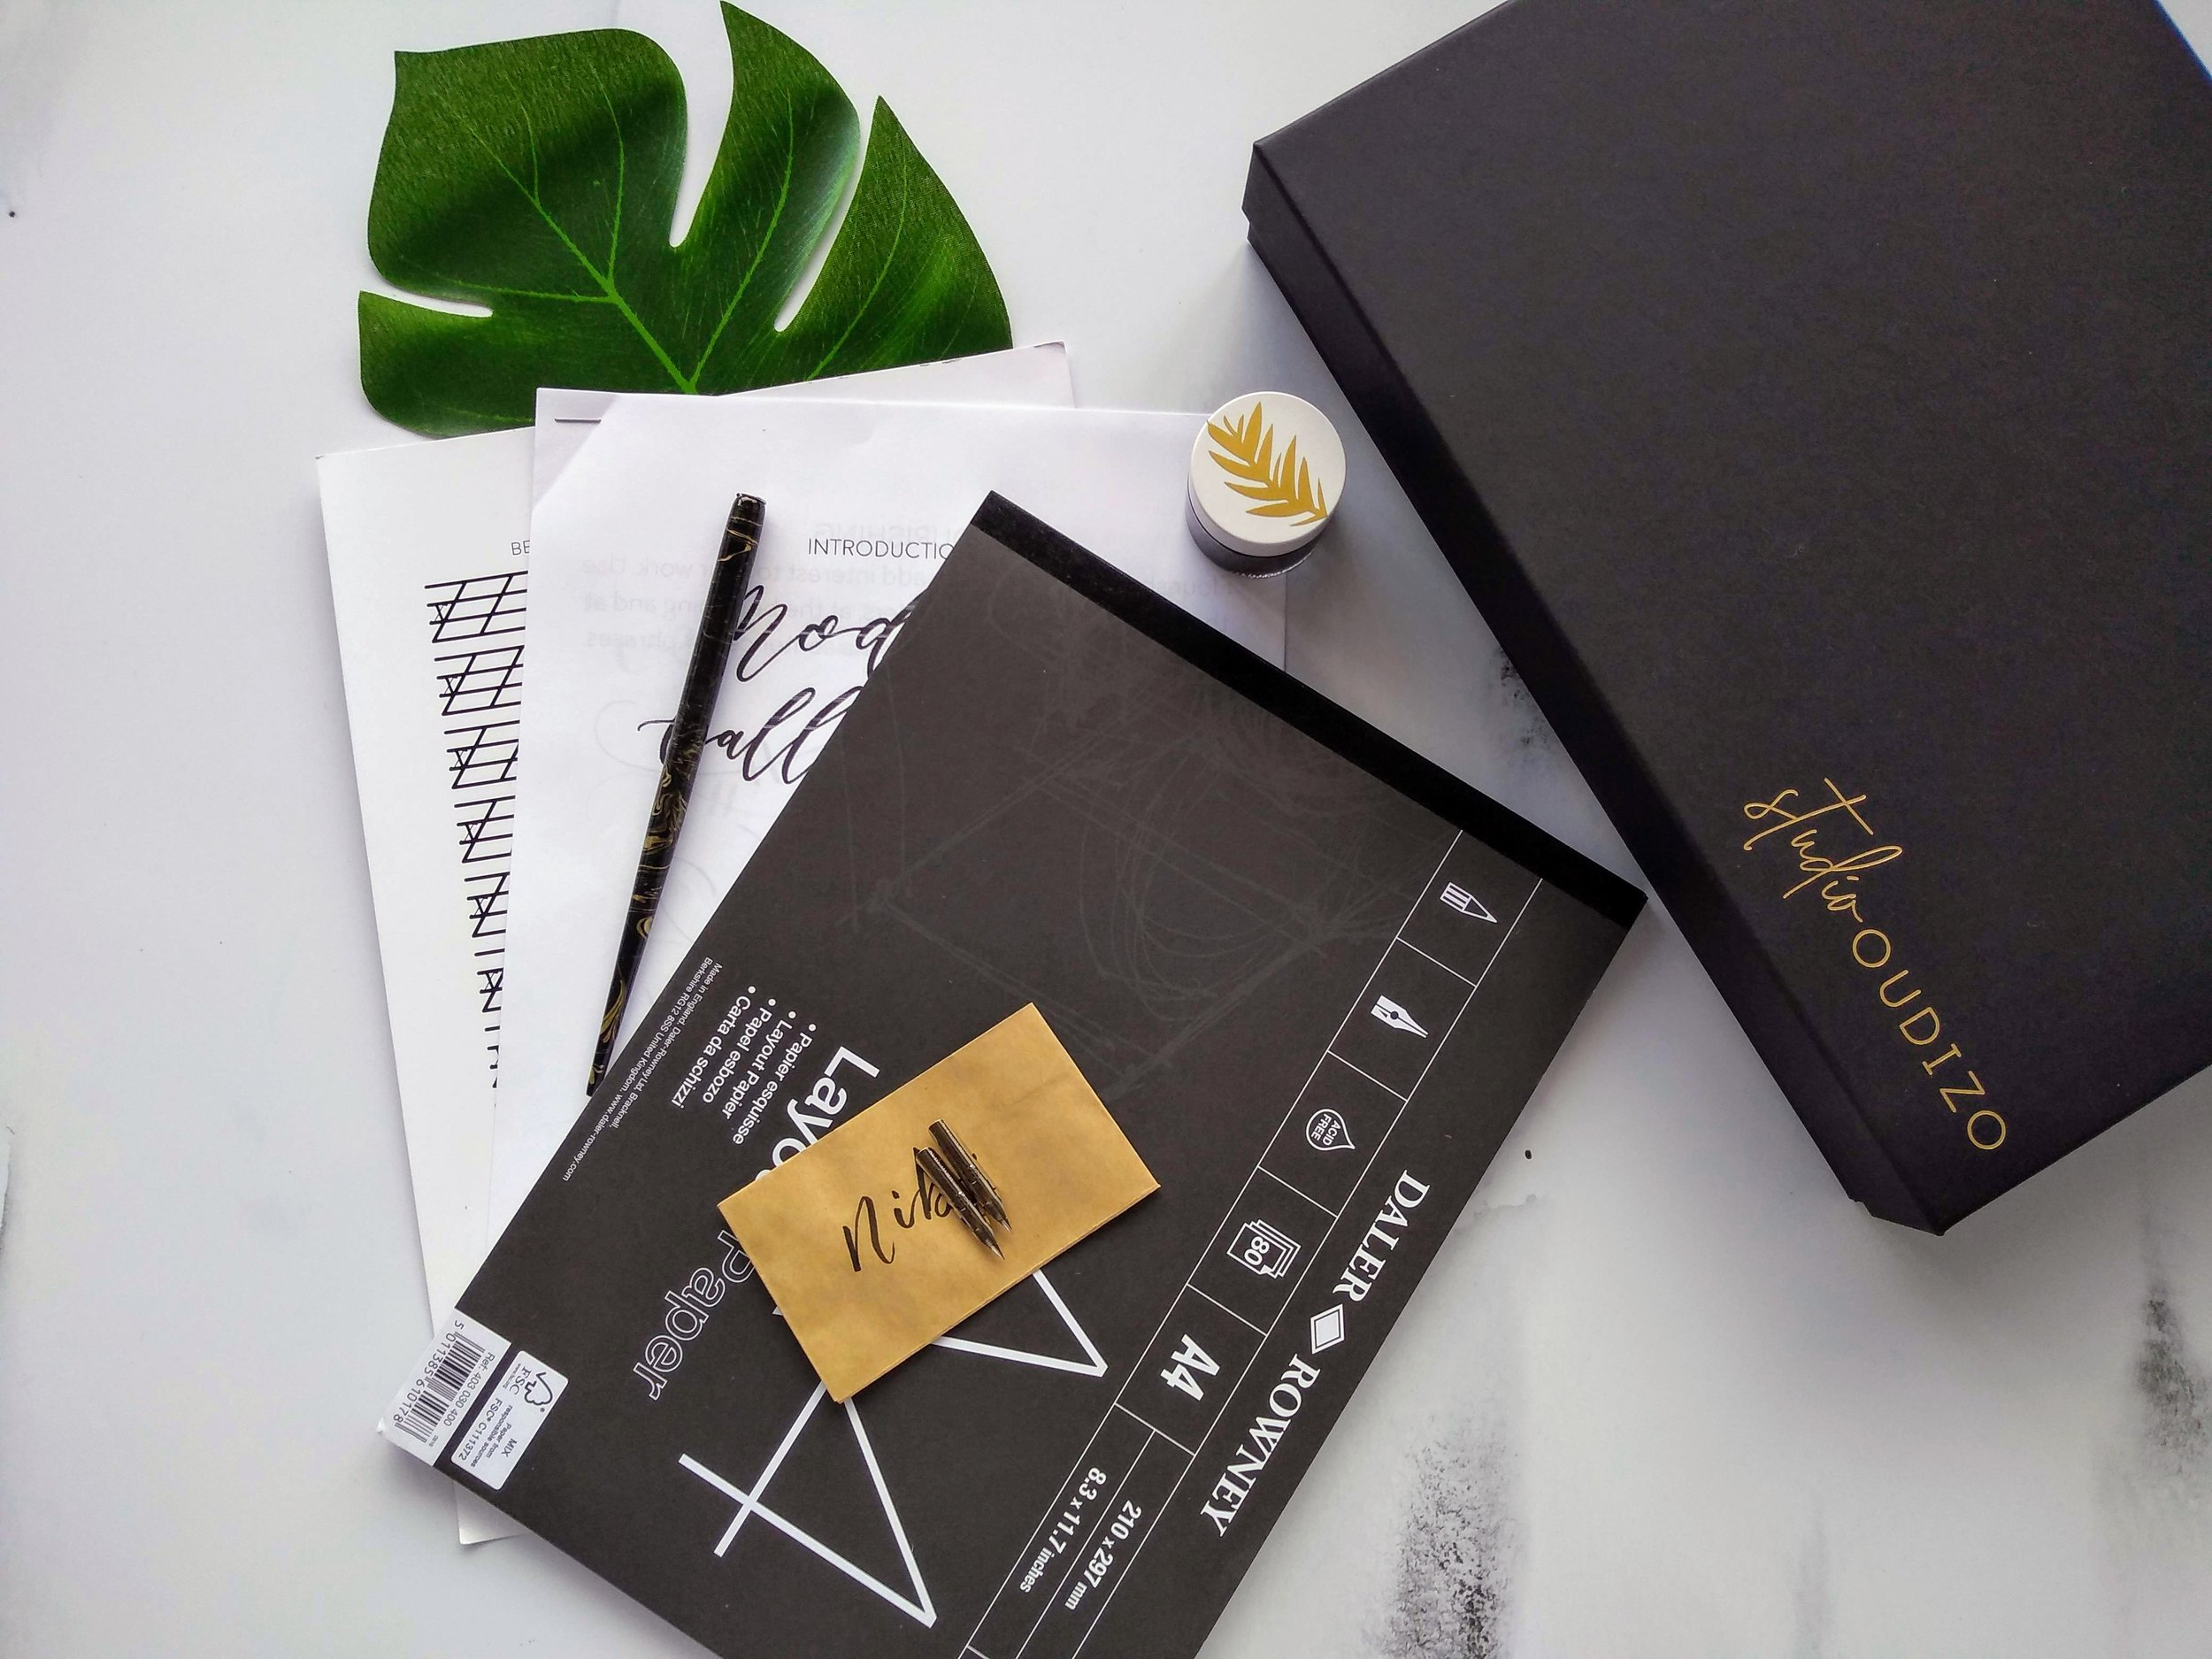 Modern Calligraphy Workshops in Bristol and Amsterdam